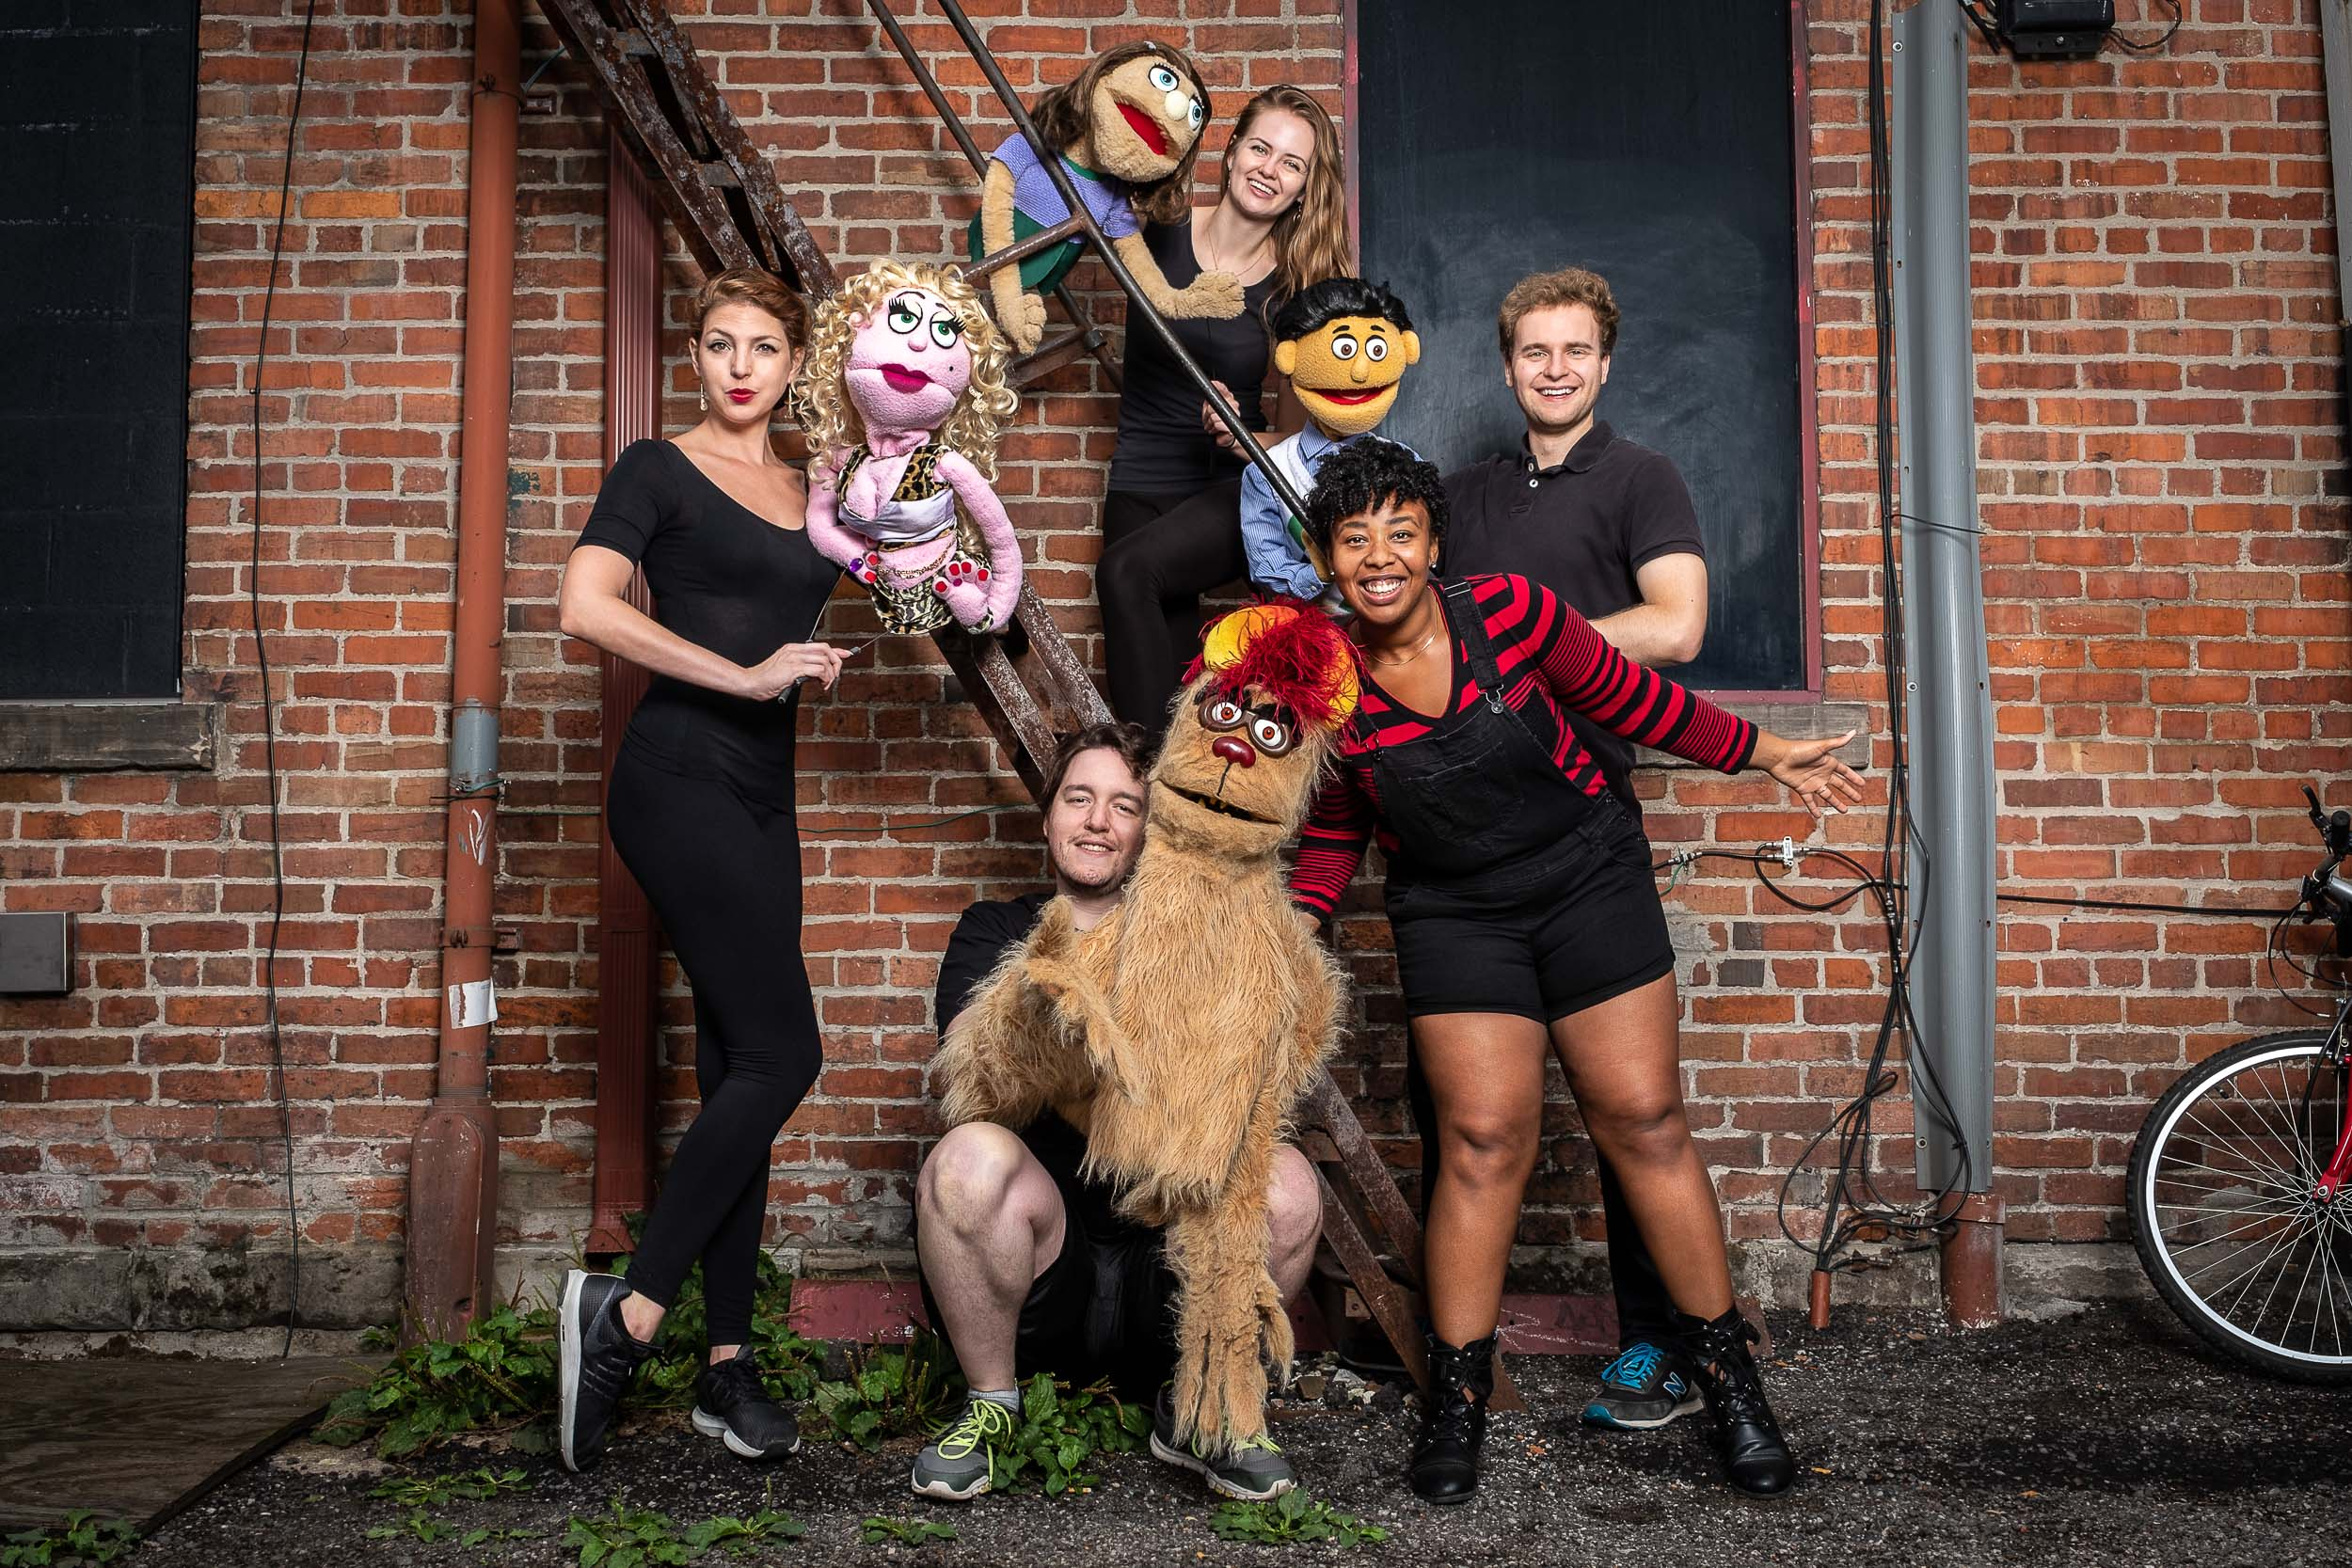 Avenue Q for Theatre and Dance at Wayne